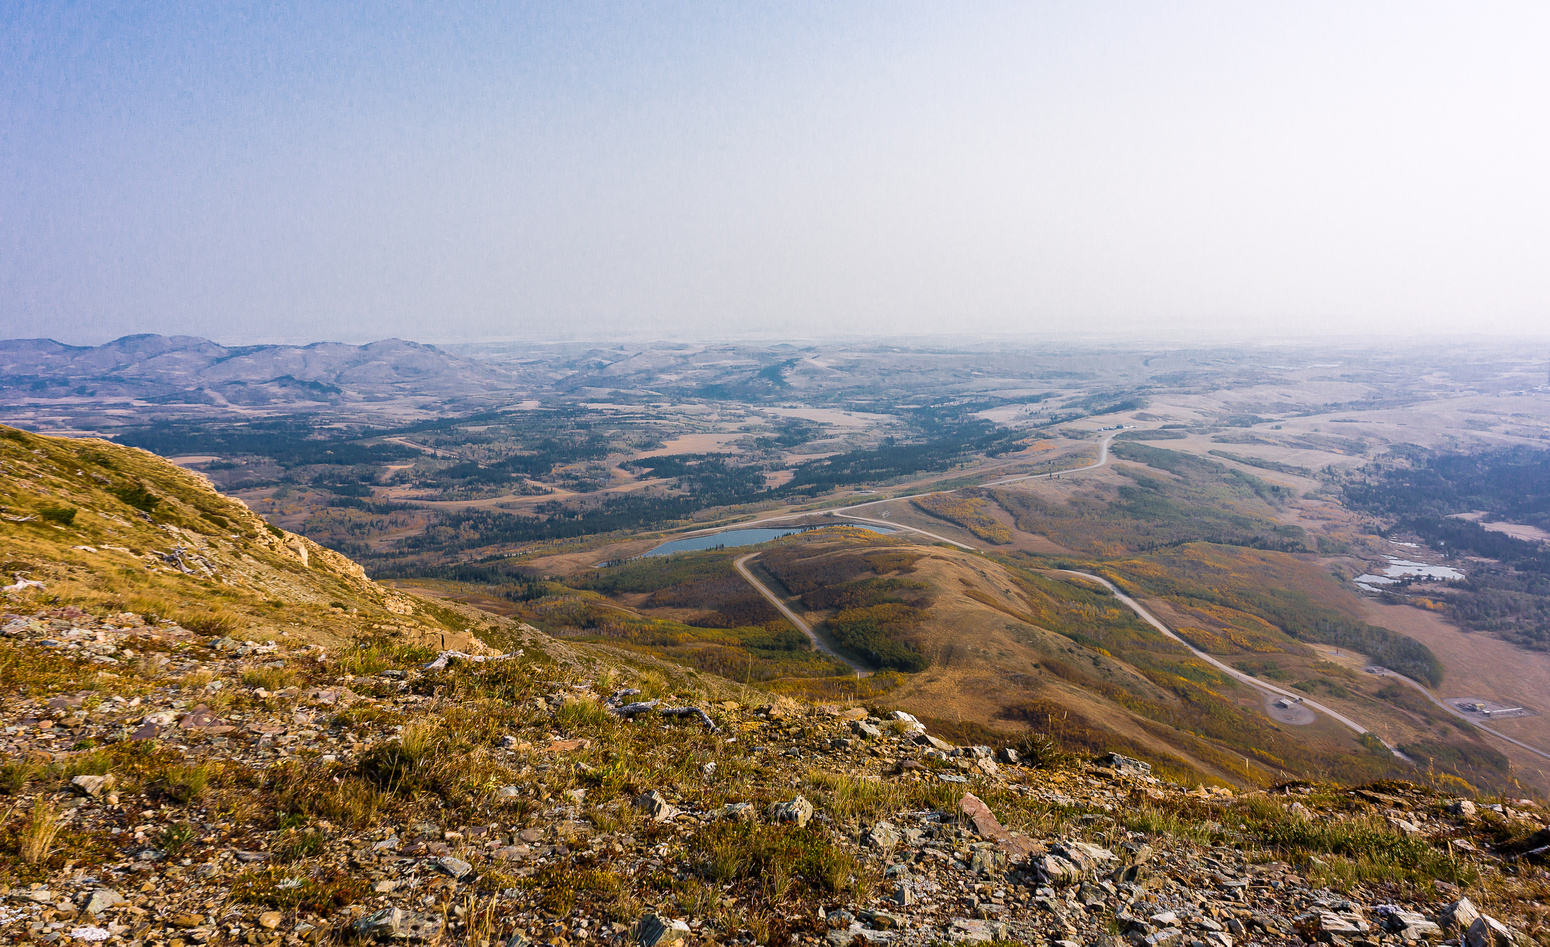 Looking back out over the prairies to the north east where Pincher and Drywood Creeks run out of the mountains.